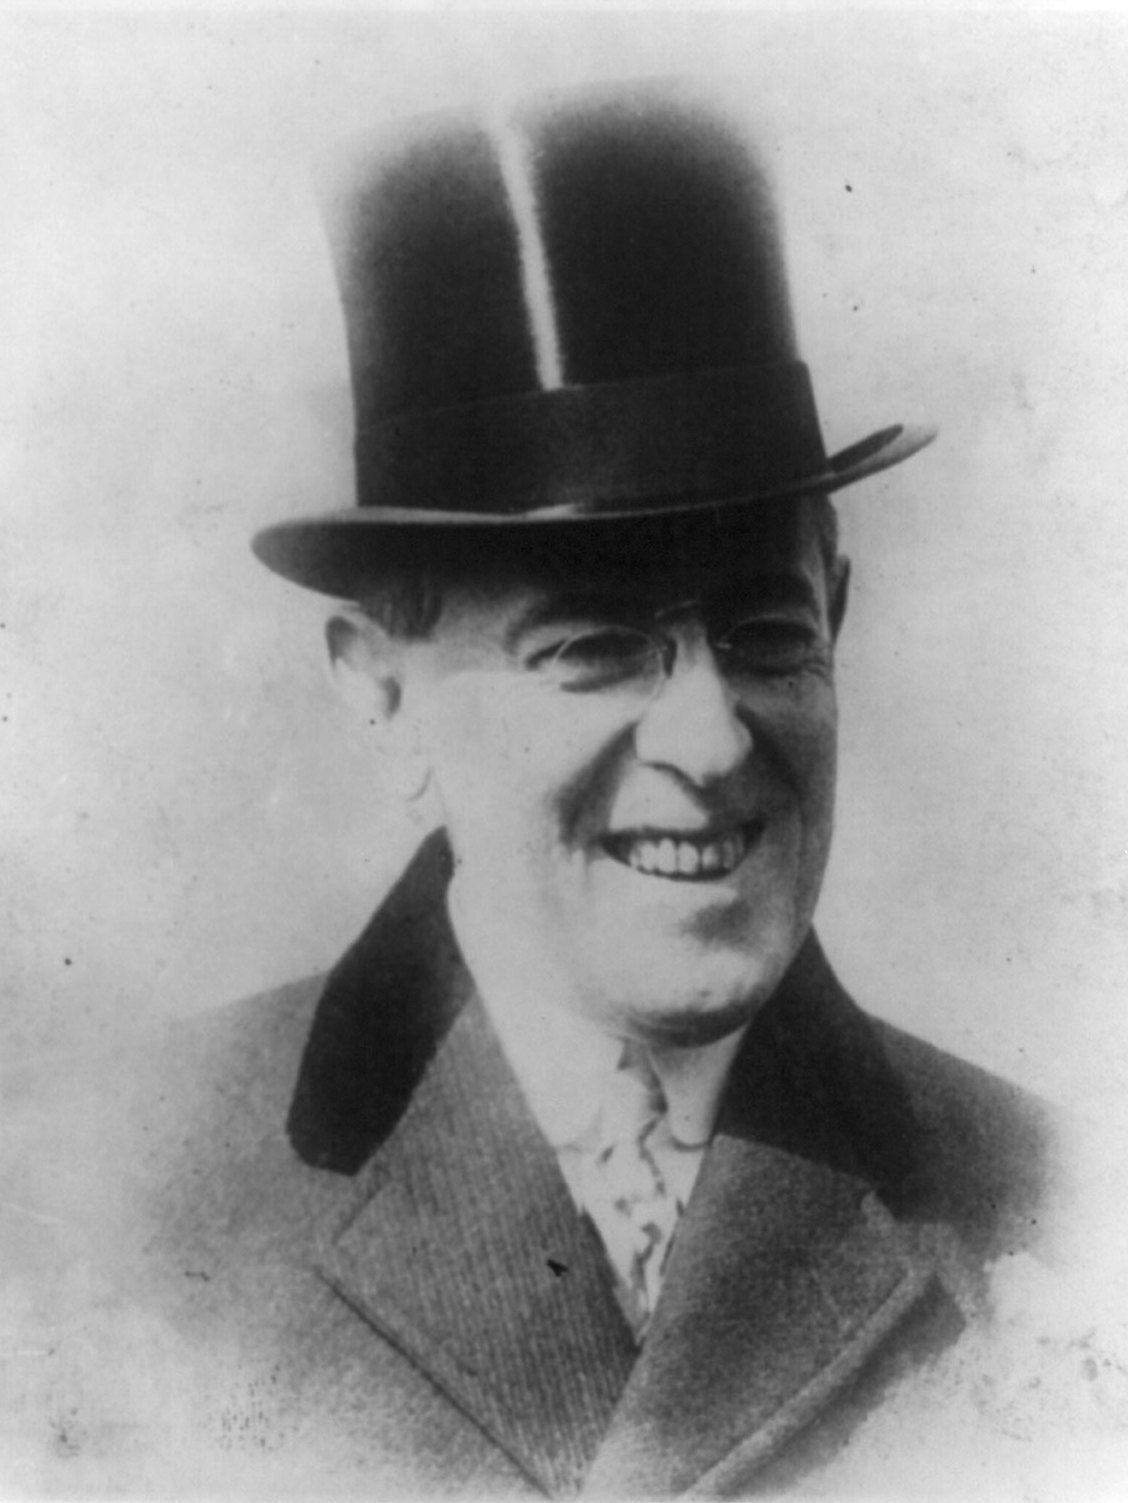 the style of woodrow national vanguard woodrow wilson he was racially conscious but his weaknesses and blurry ldquoidealismrdquo allowed him to be manipulated by our enemies so much so that benjamin